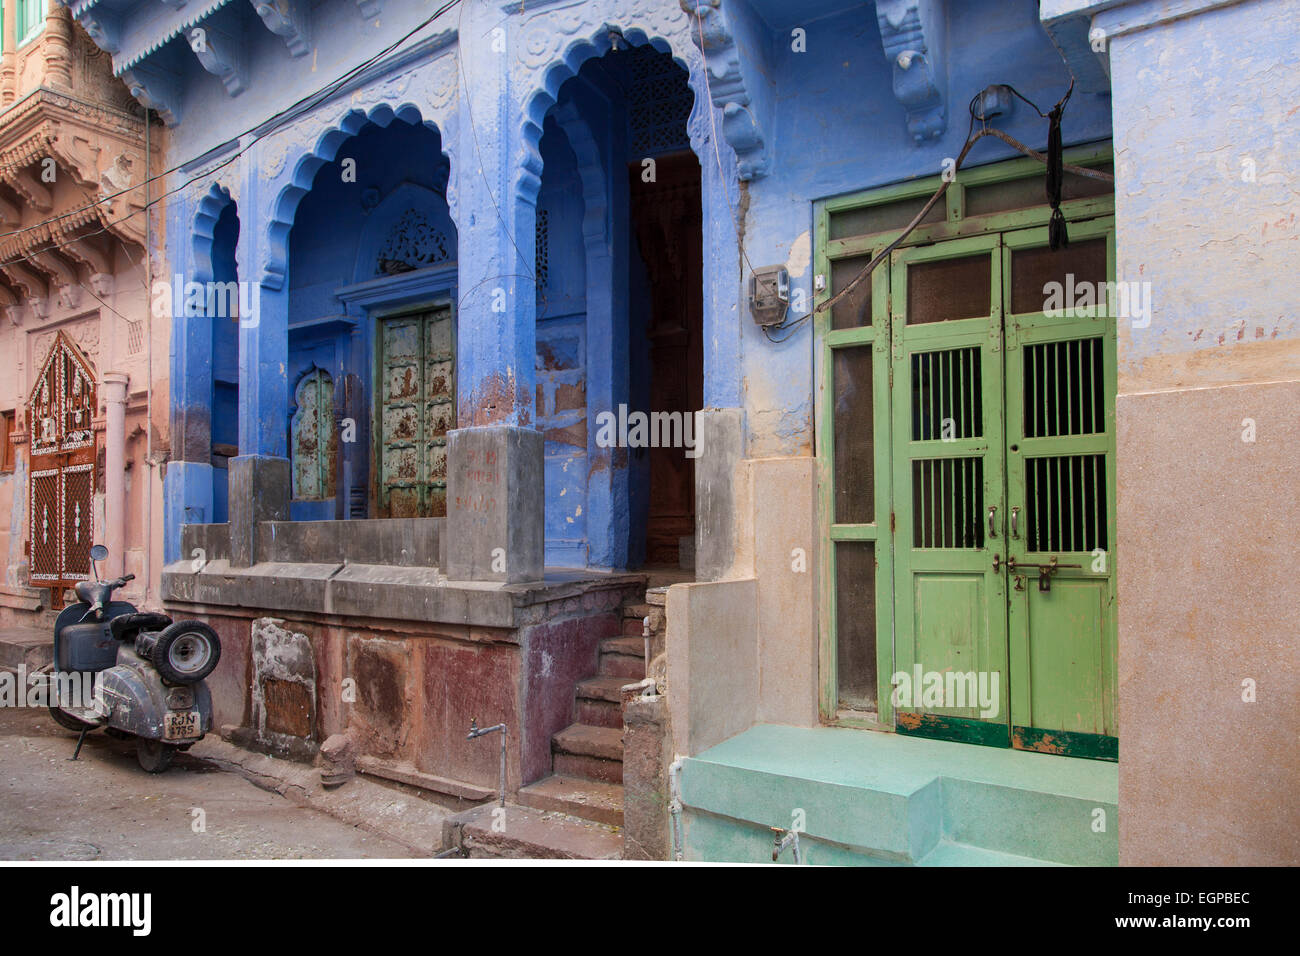 colourful blue house in Jodhpur, Rajasthan, India - Stock Image